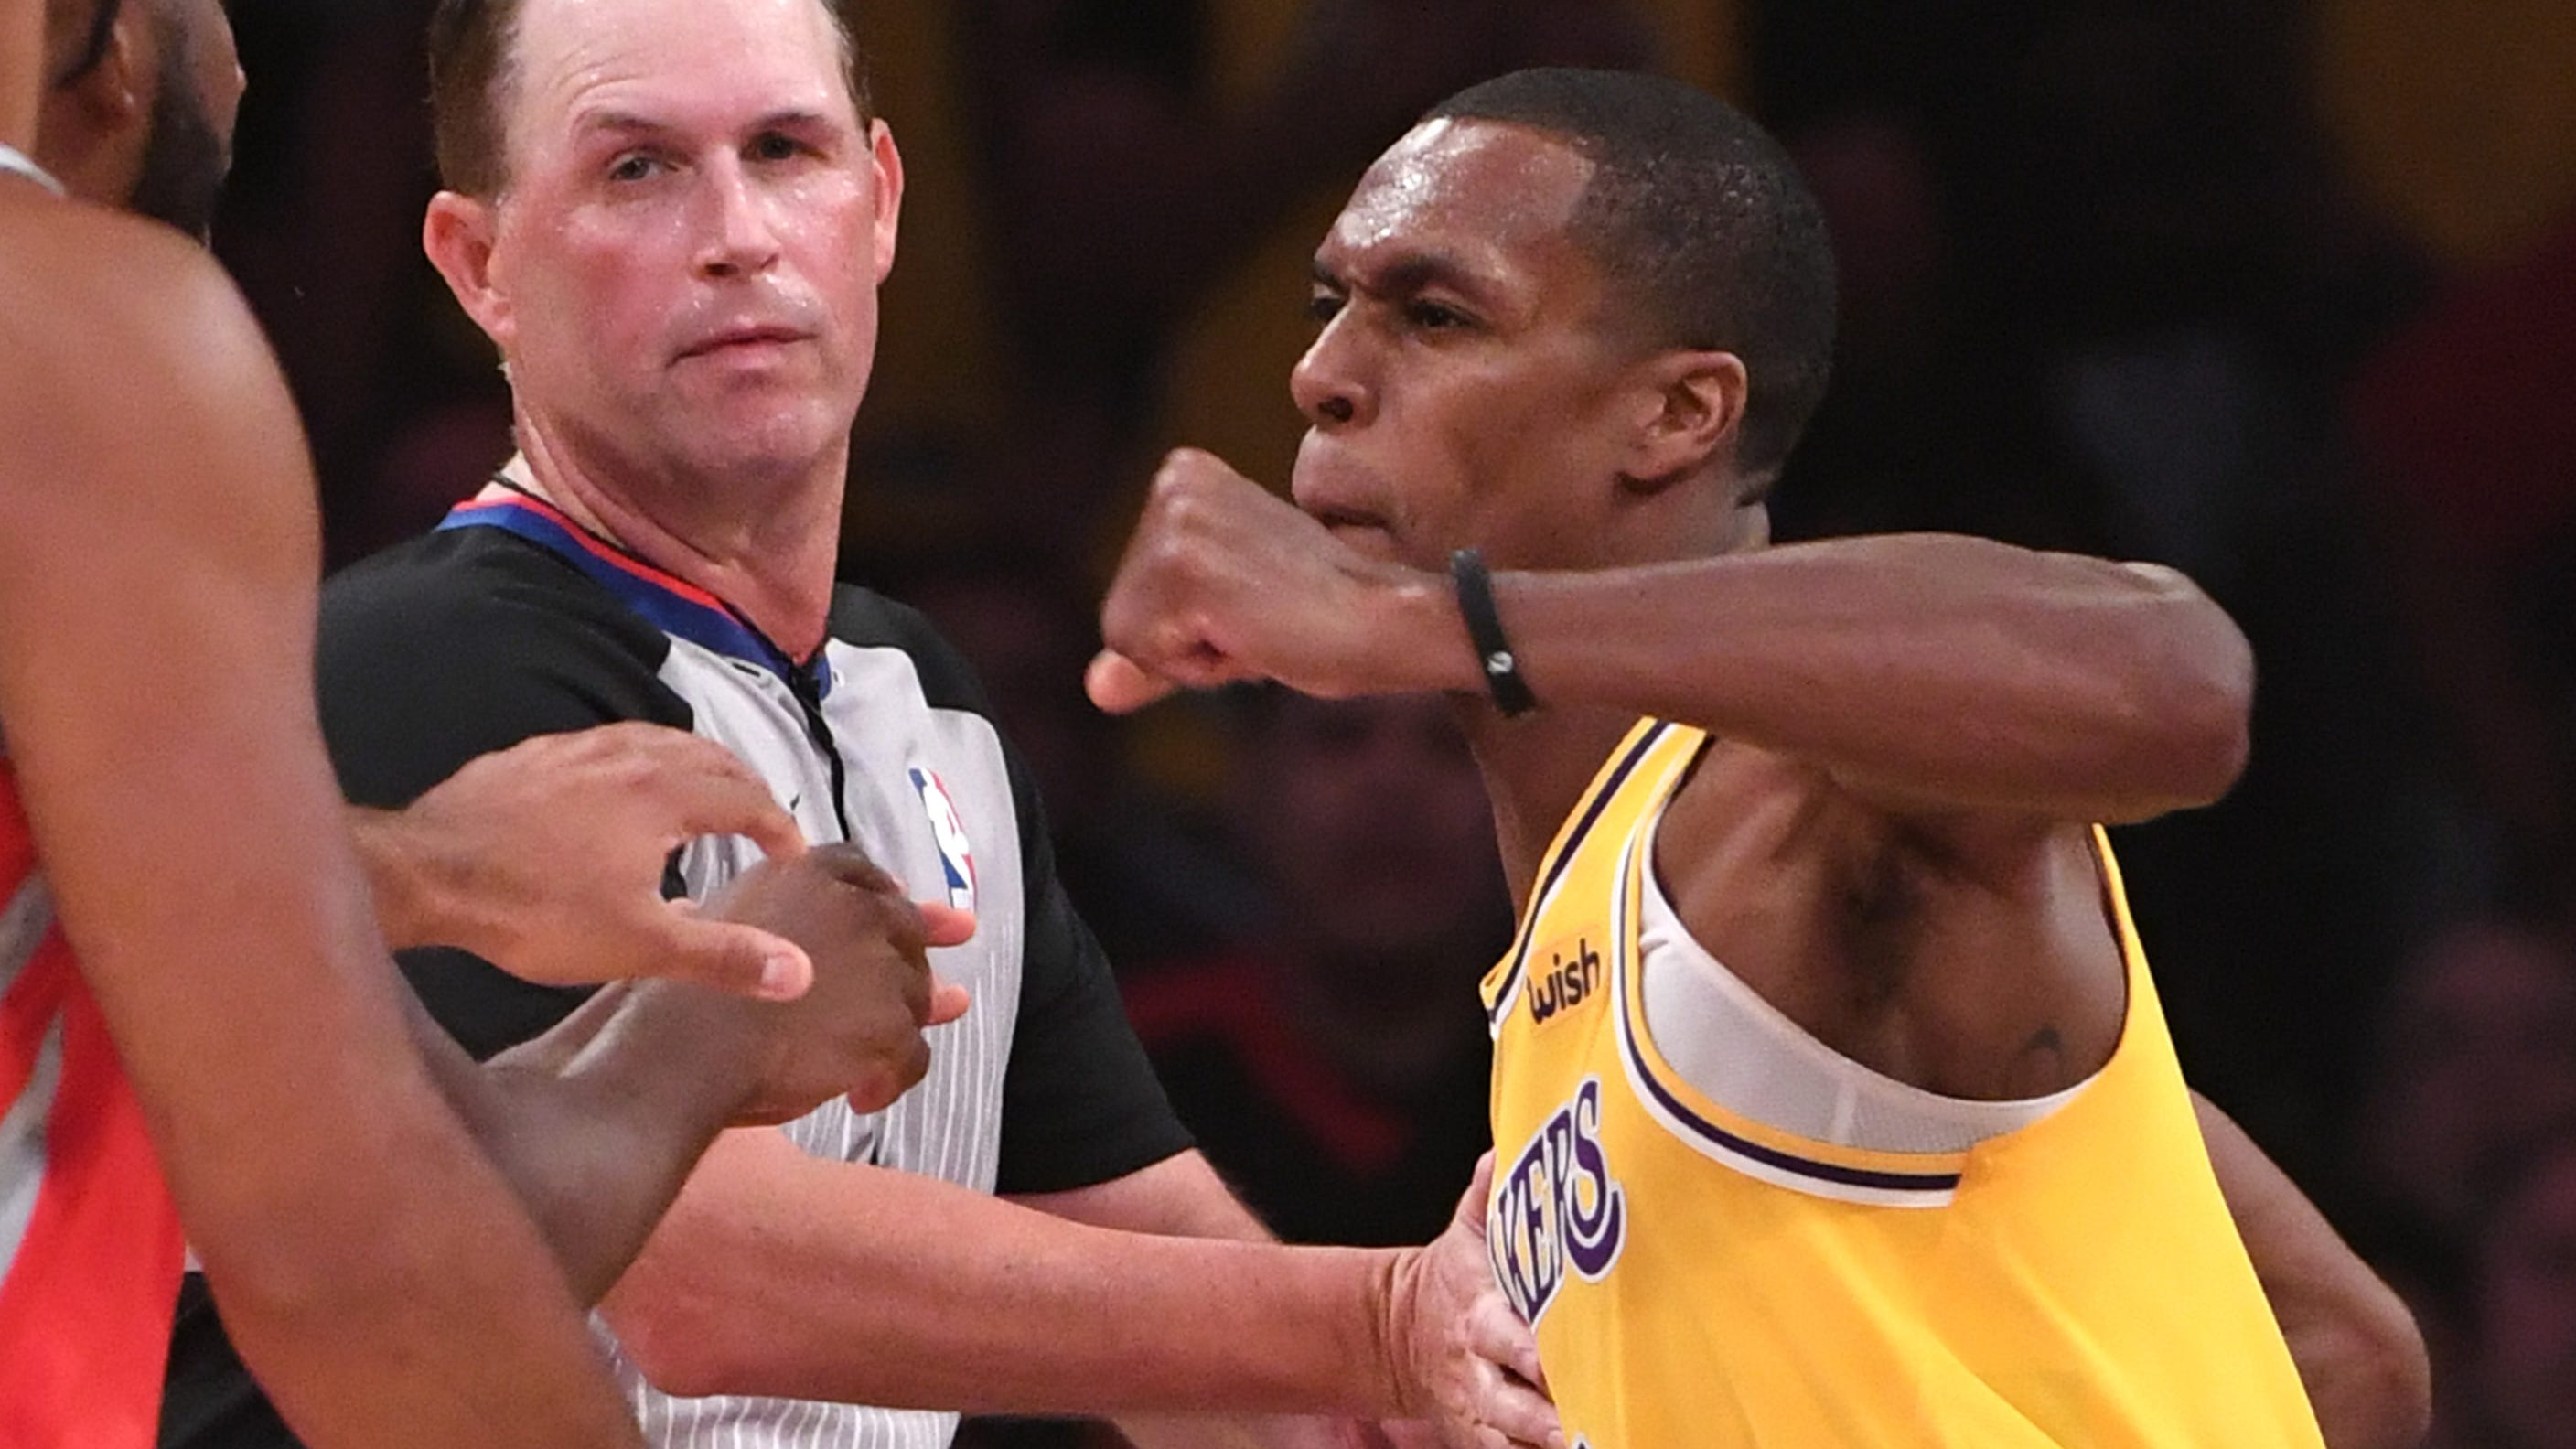 Rajon Rondo throws a punch at Chris Paul during the chaotic scene.